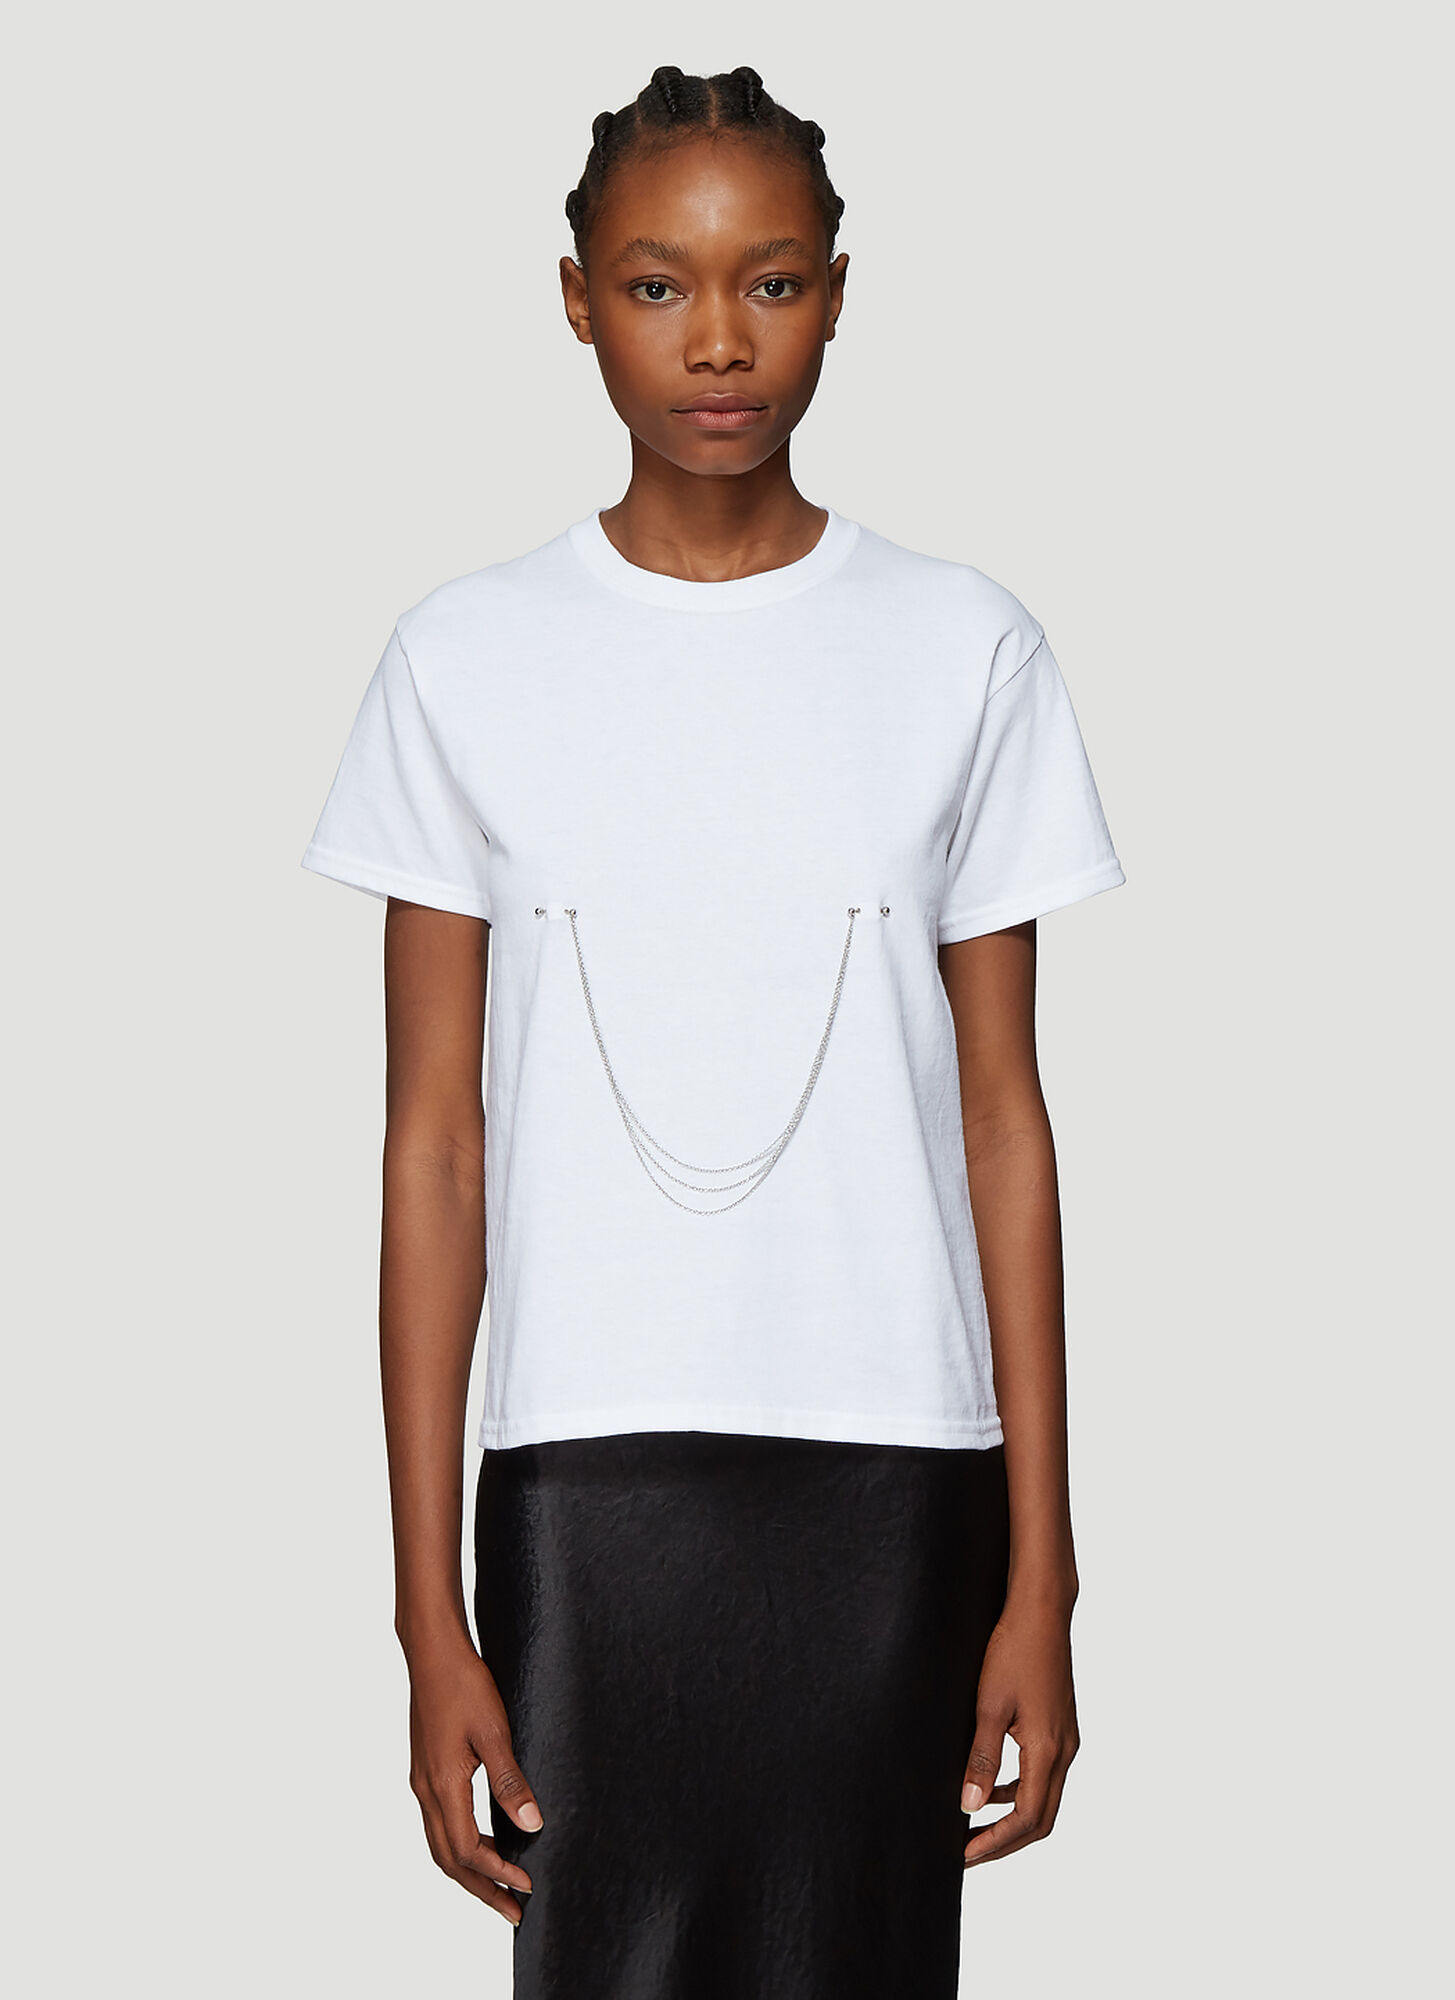 Collina Strada Pierced Chain T-Shirt in White